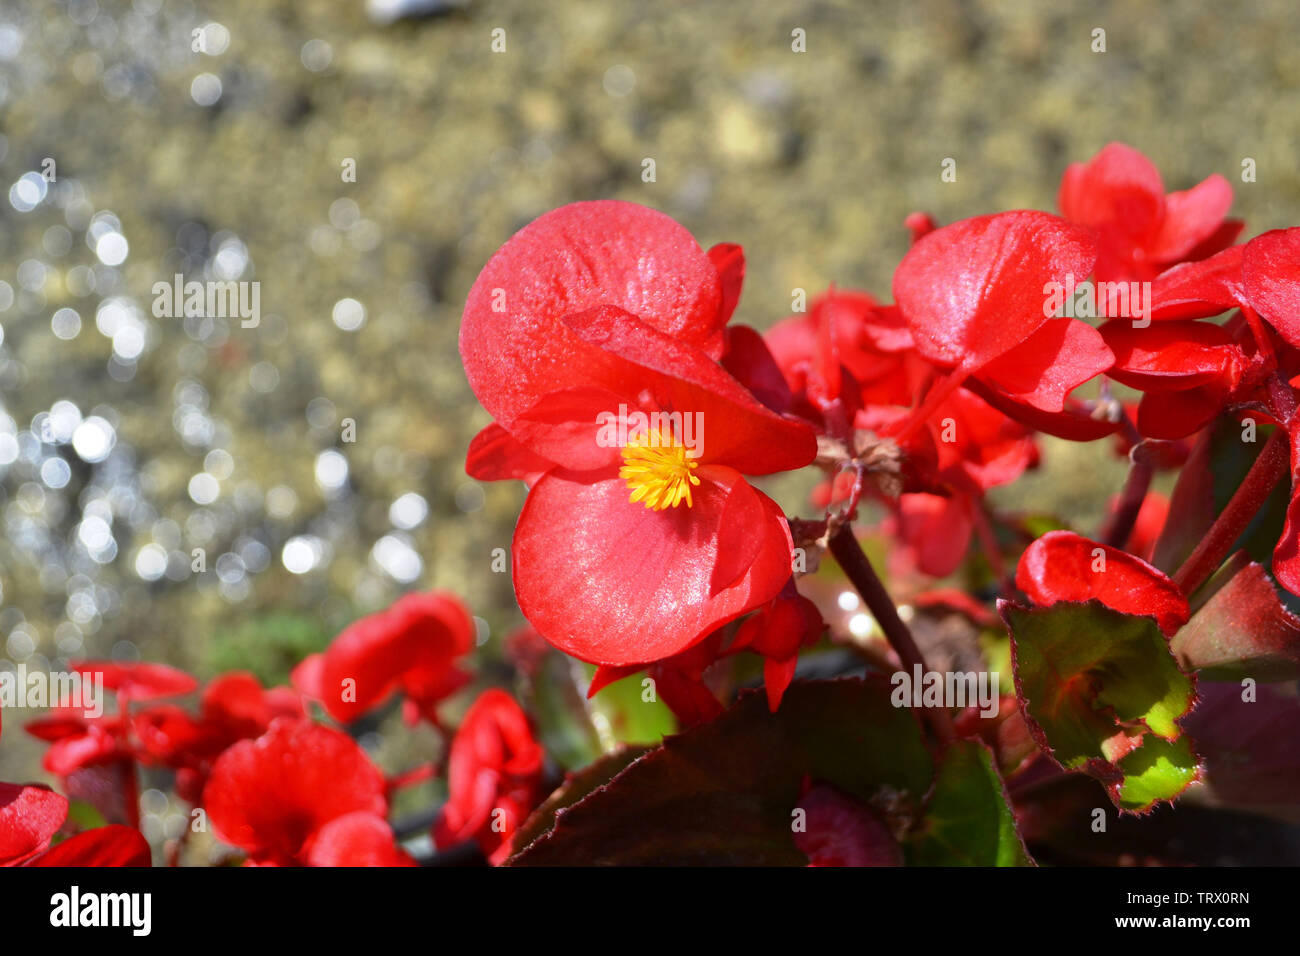 Close-up view to heads of red begonia flower blooming brightly illuminated under the sun with water blur background. Stock Photo